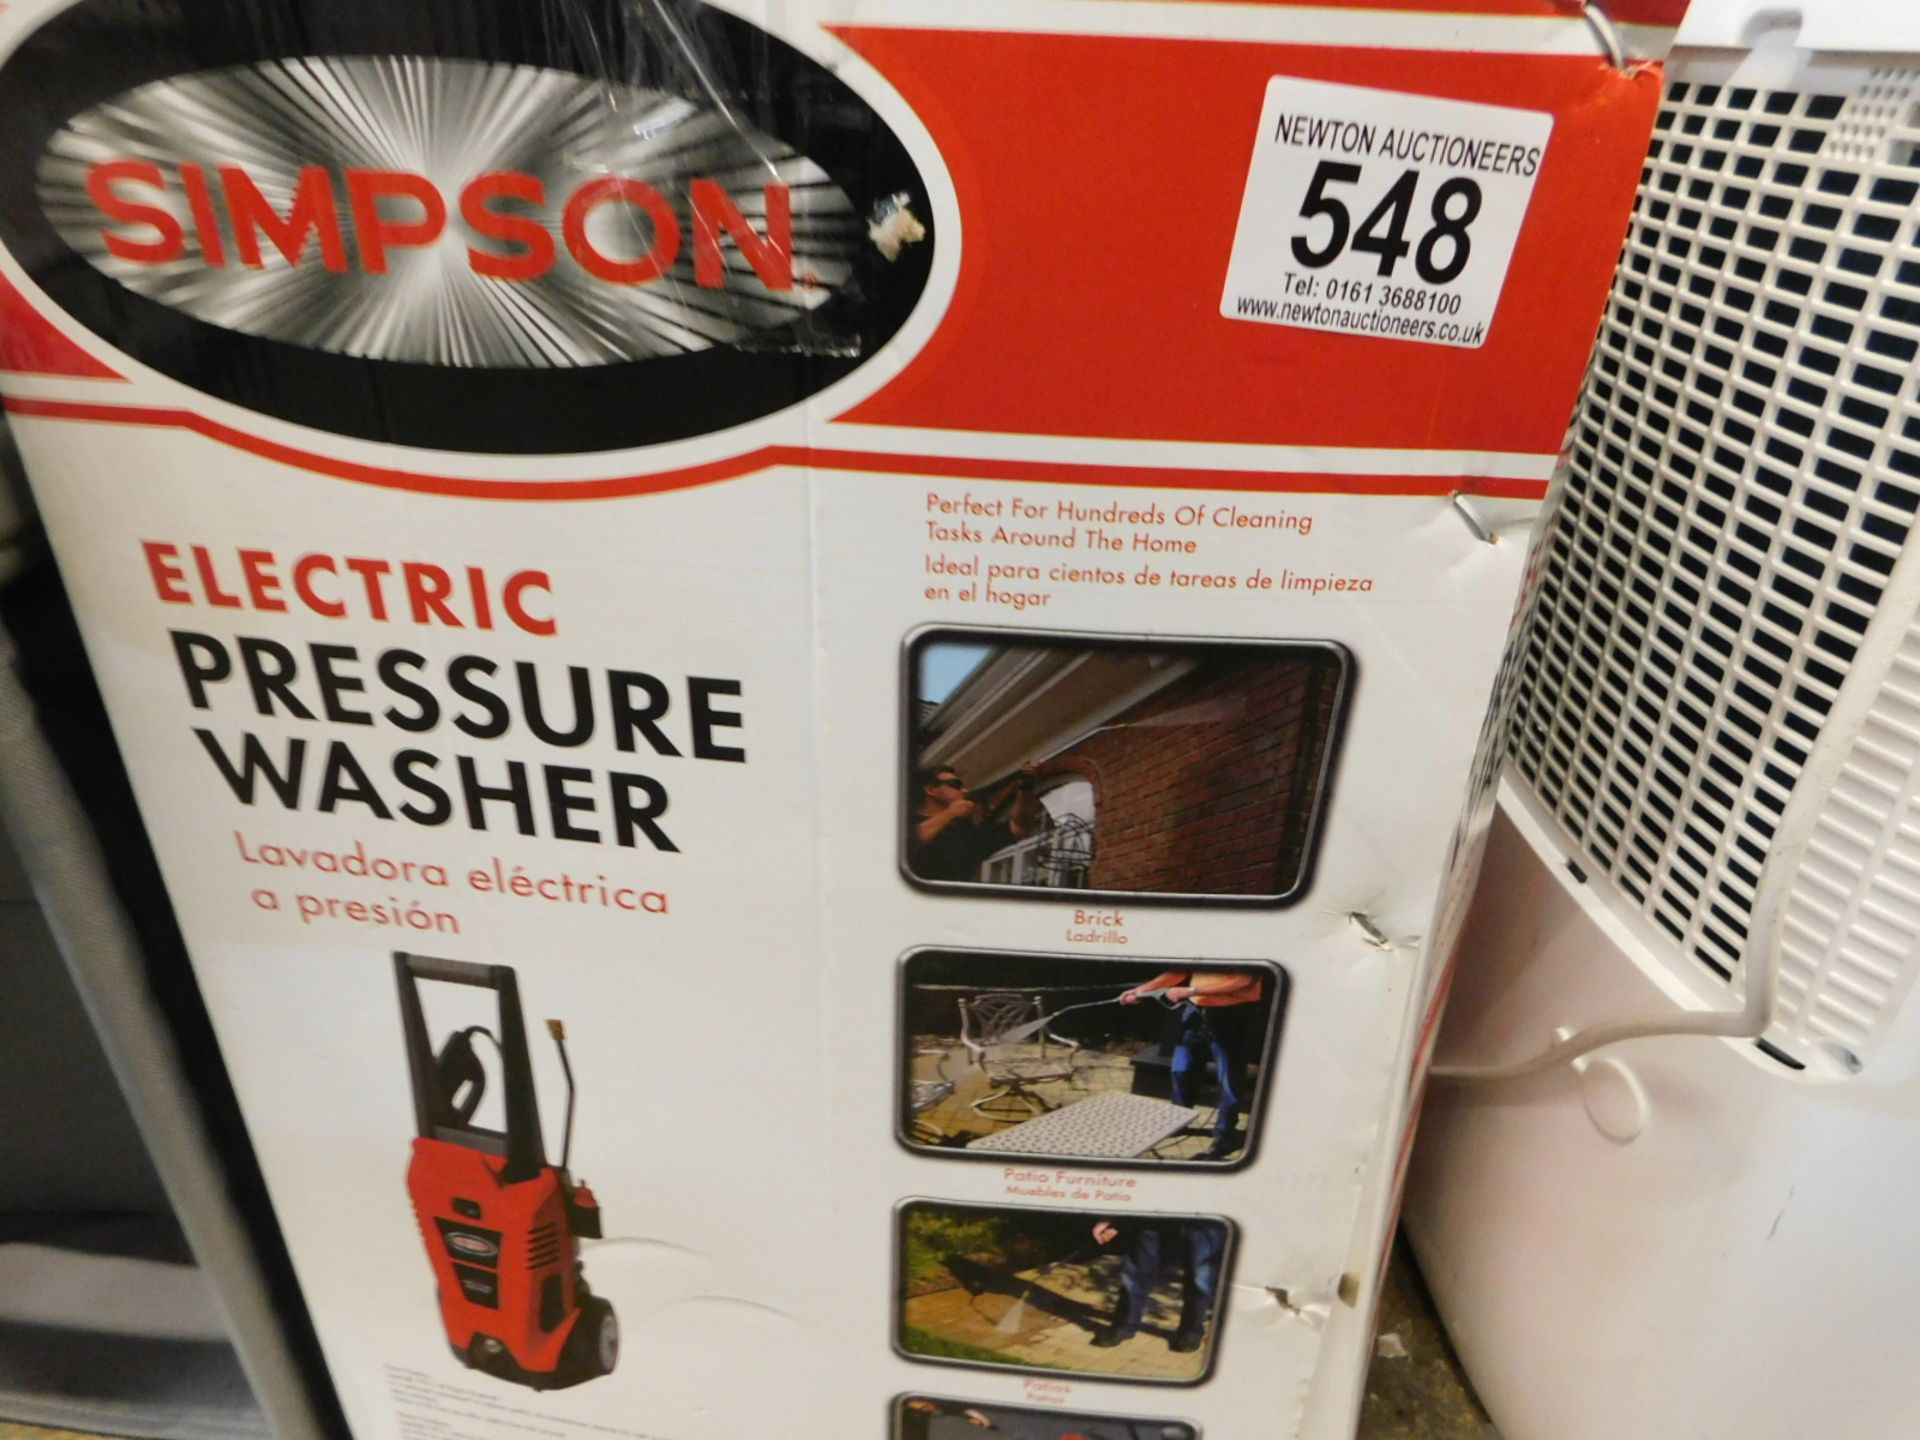 Lot 548 - 1 BOXED SIMPSON 13SIE-170UK ELECTRIC PRESSURE WASHER 1700 PSI RRP £179.99